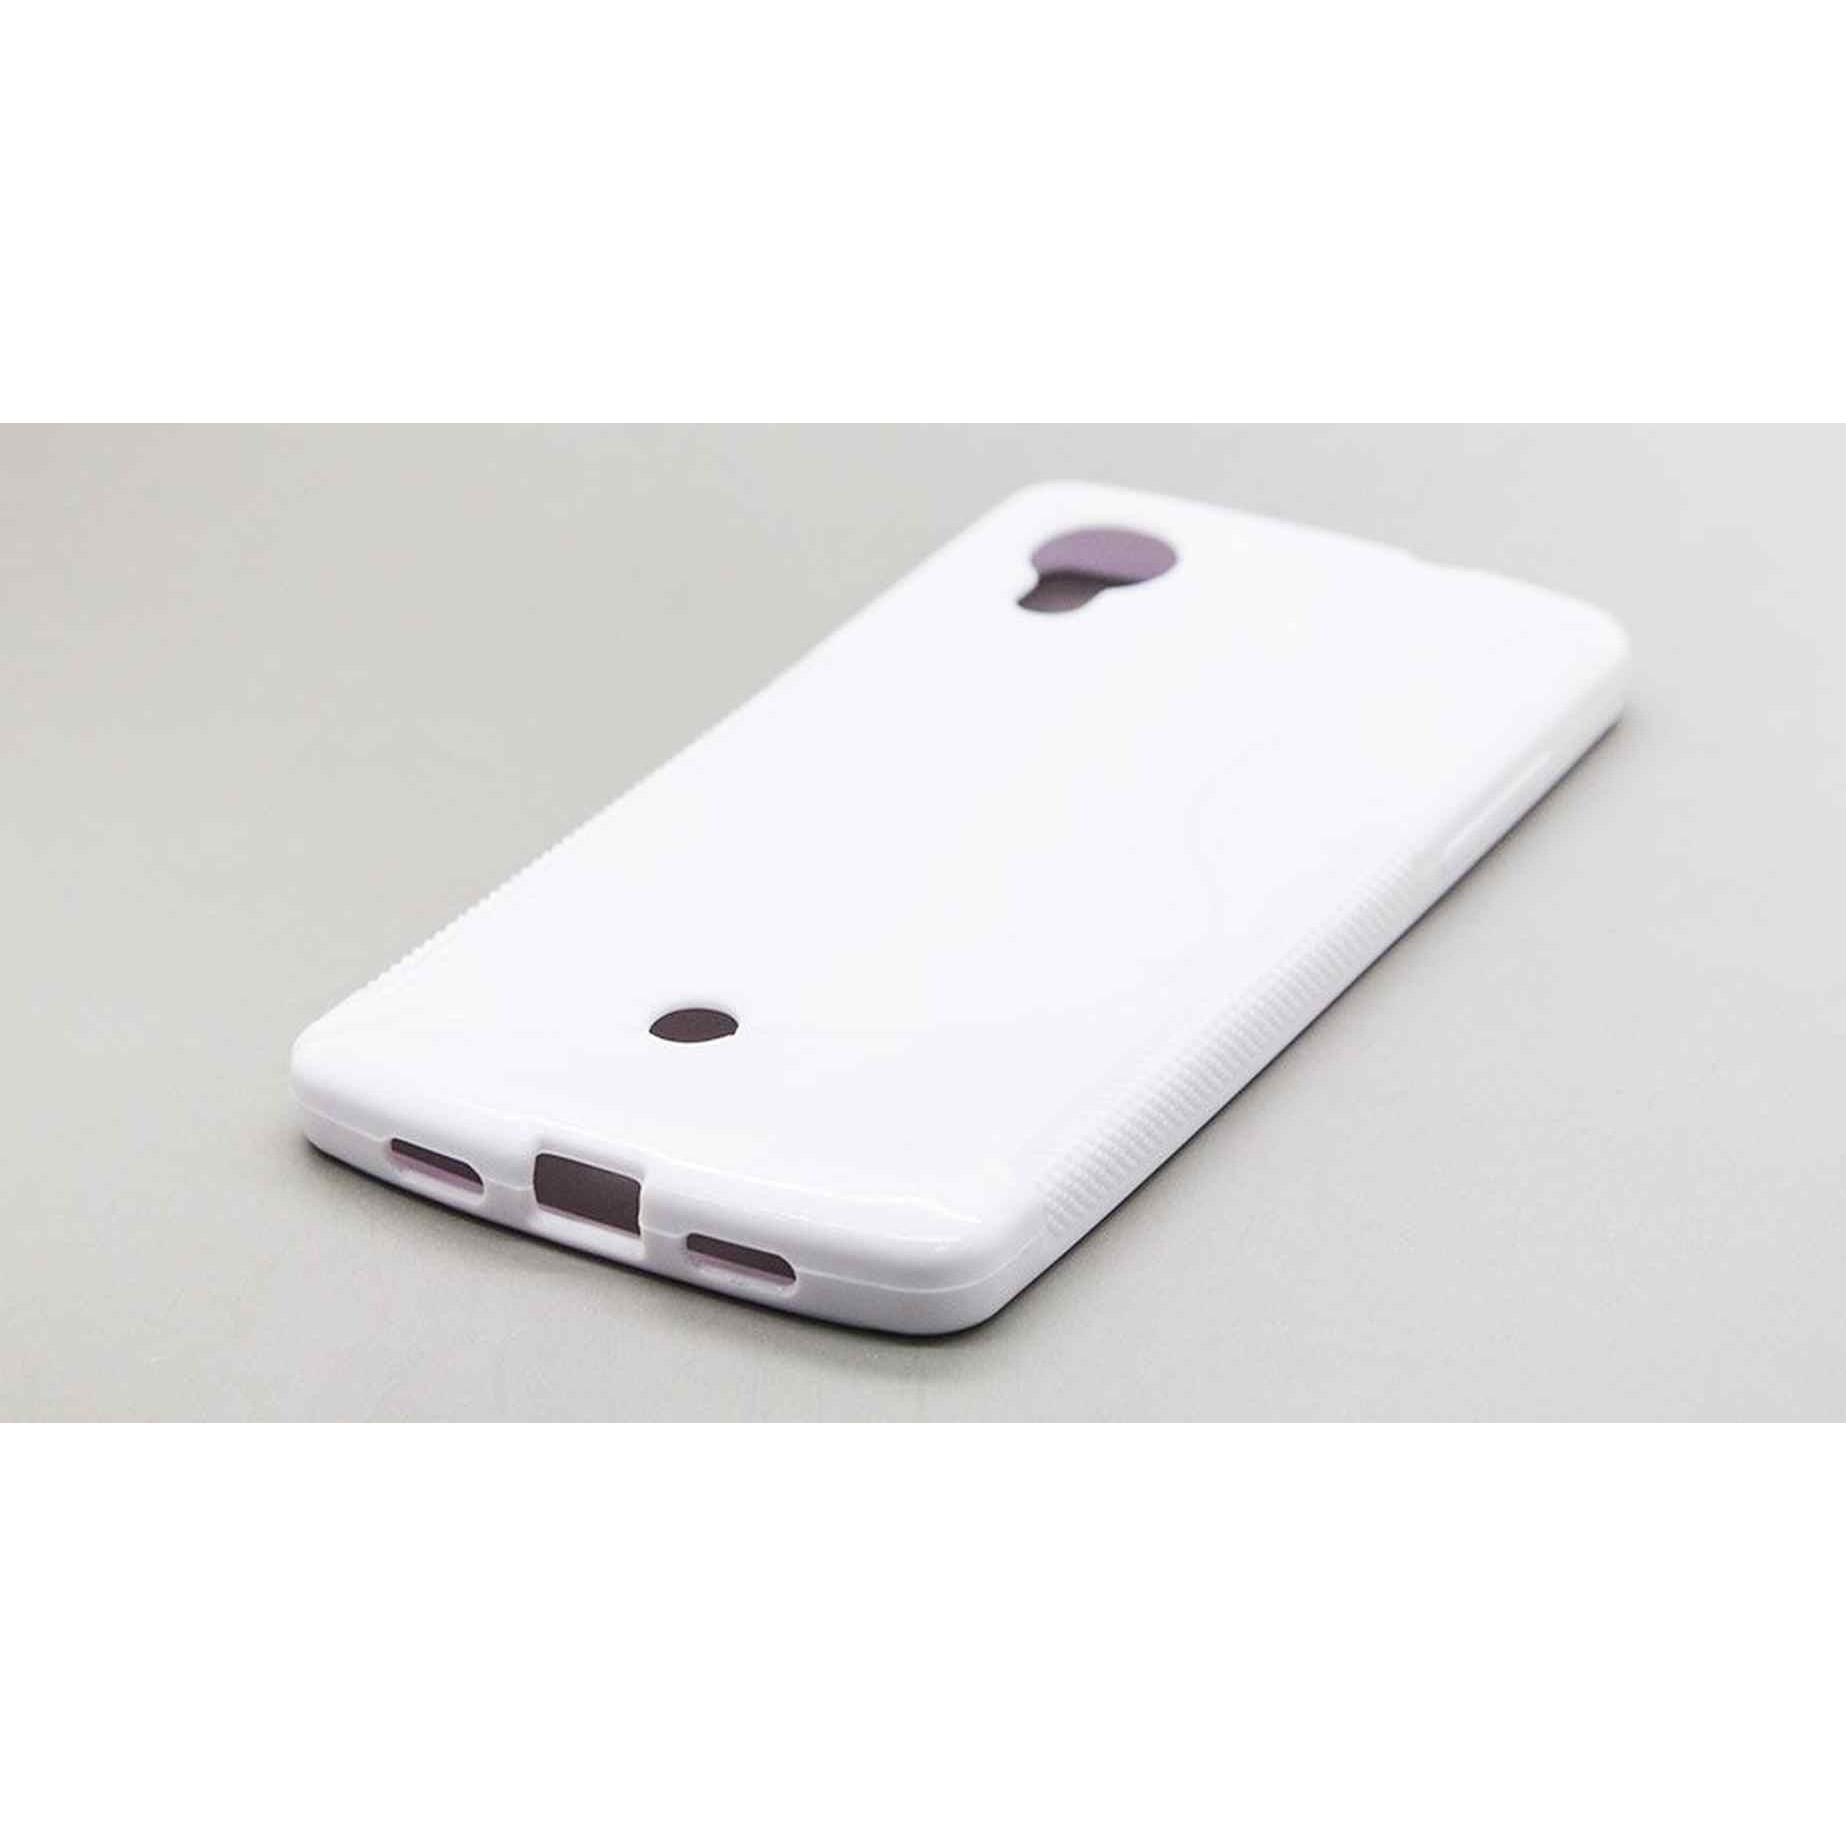 uk availability 78a51 30a09 Back Panel Cover for LG Nexus 5 - White